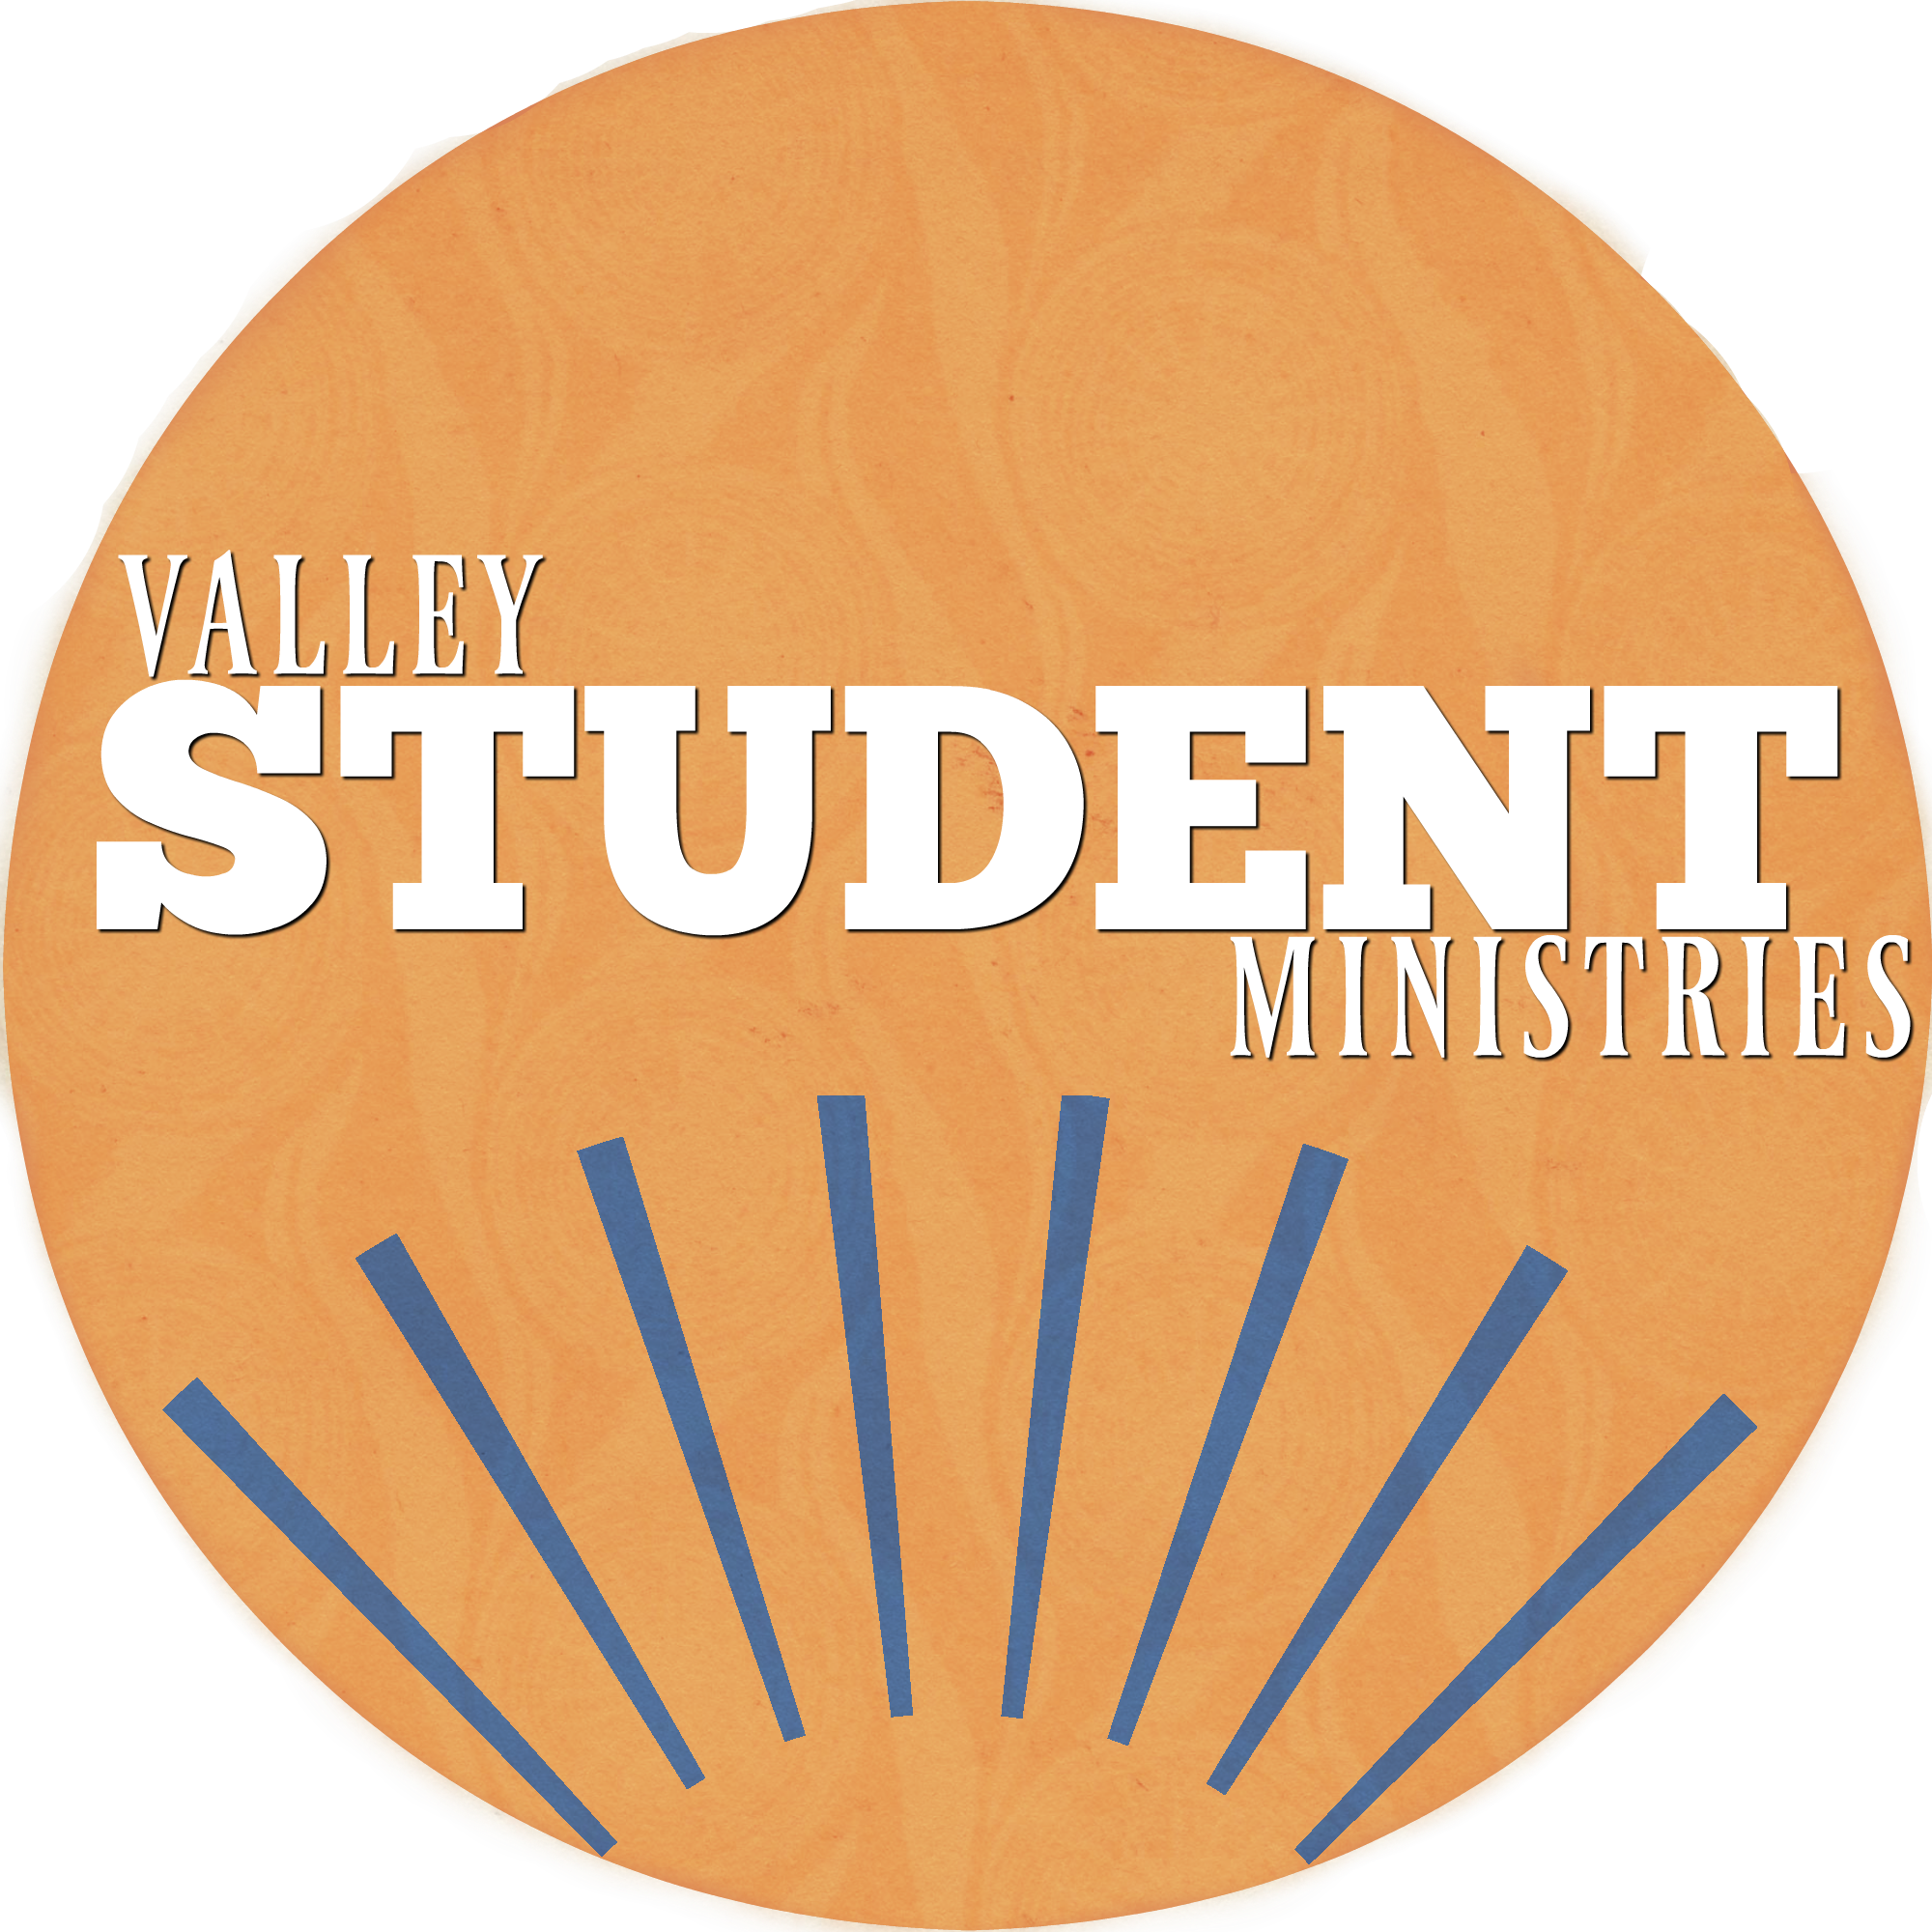 Valley Student Ministries